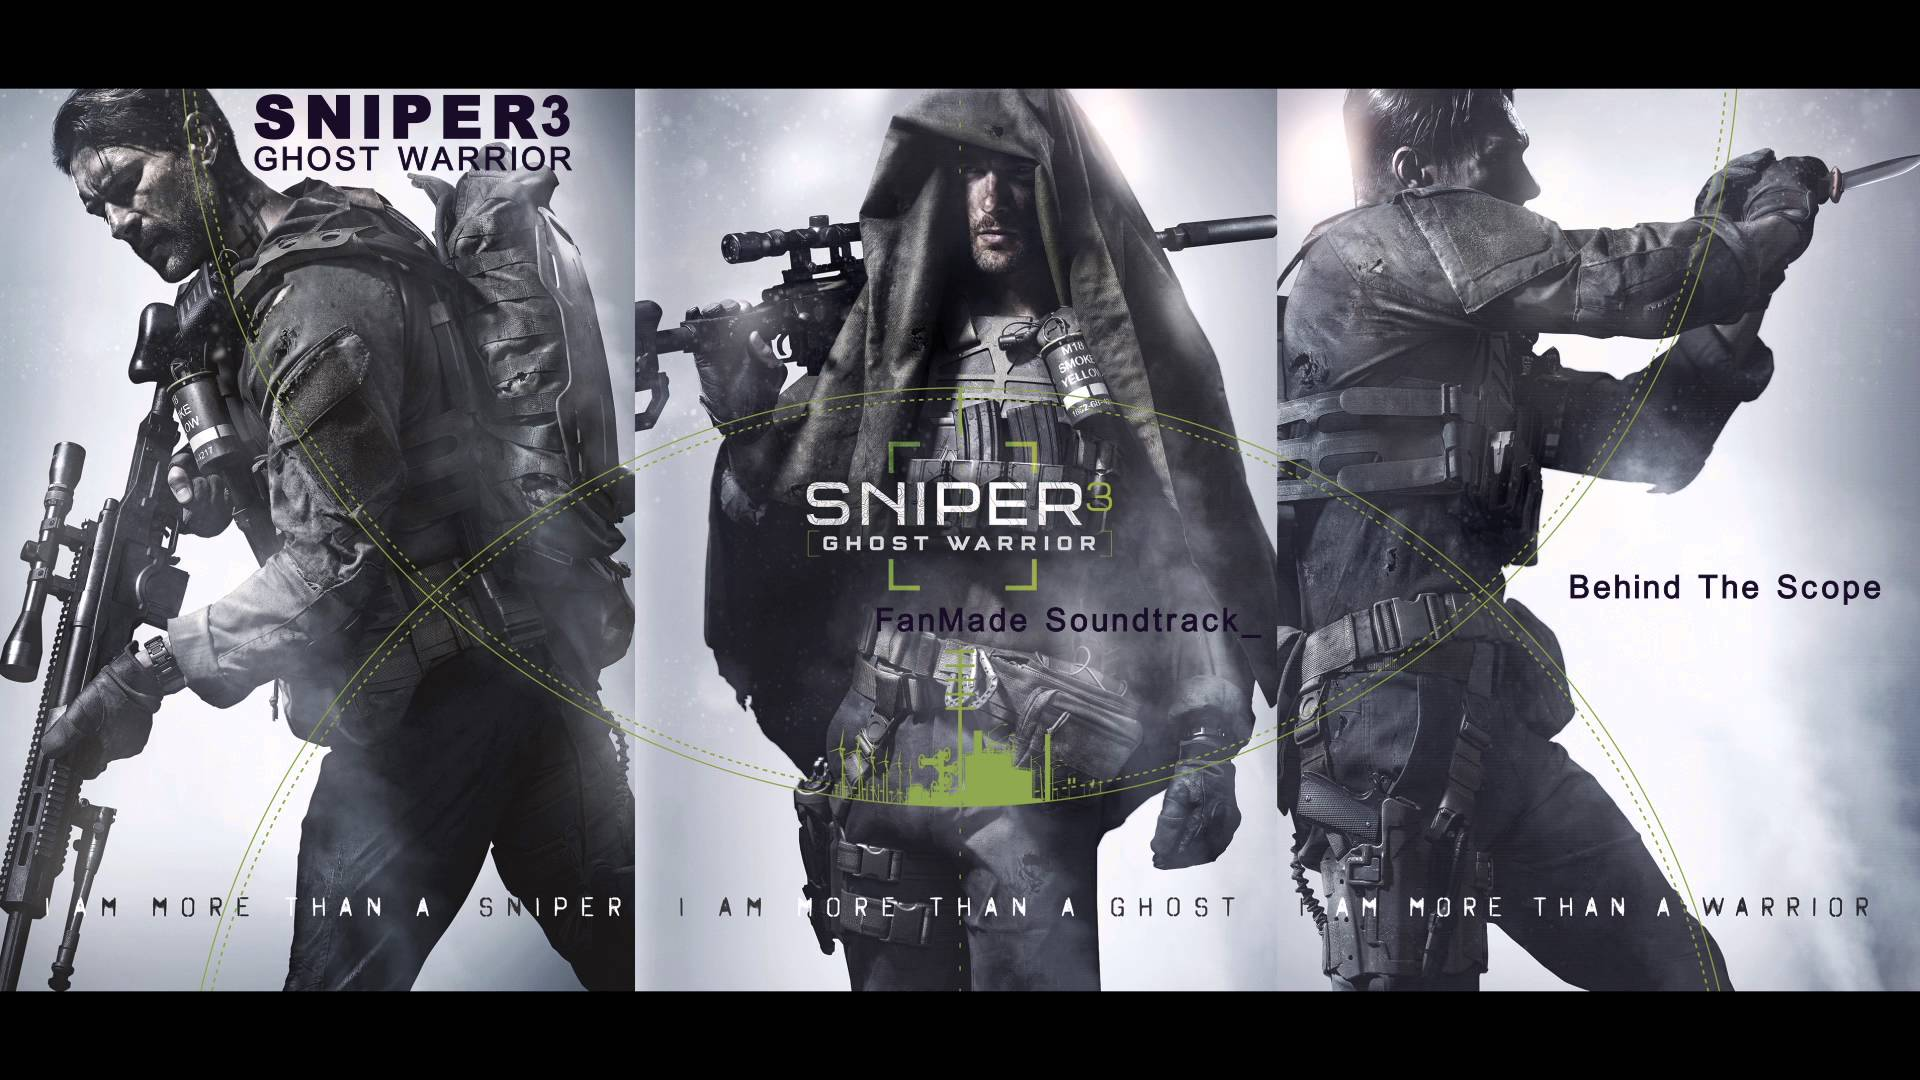 Sniper ghost warrior 3 clipart graphic royalty free Download Ghost Warrior 3 Hd Wallpapers - Sniper Ghost ... graphic royalty free